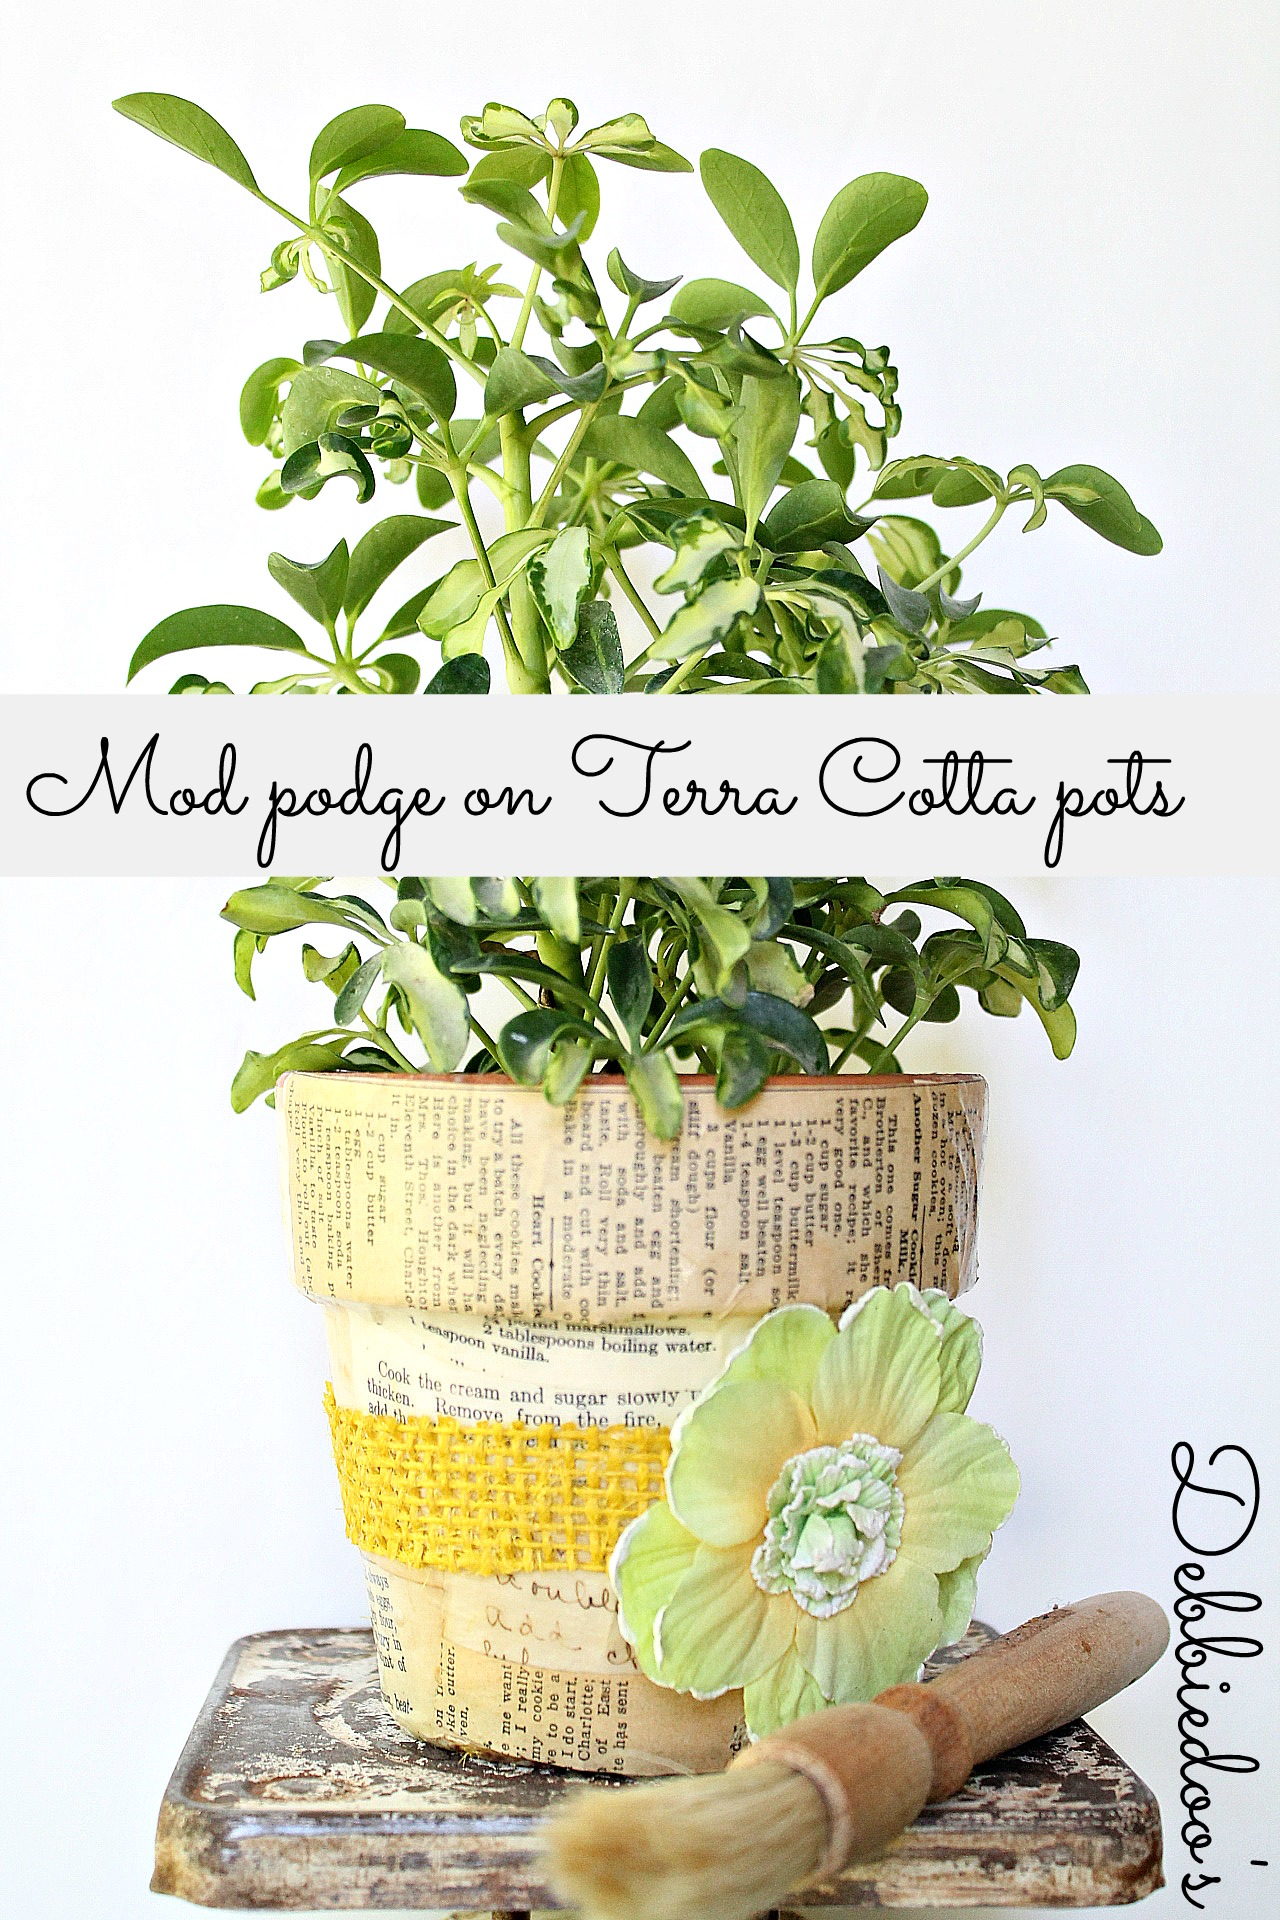 Mod podge terra cotta pots with fabric and a vintage recipe book